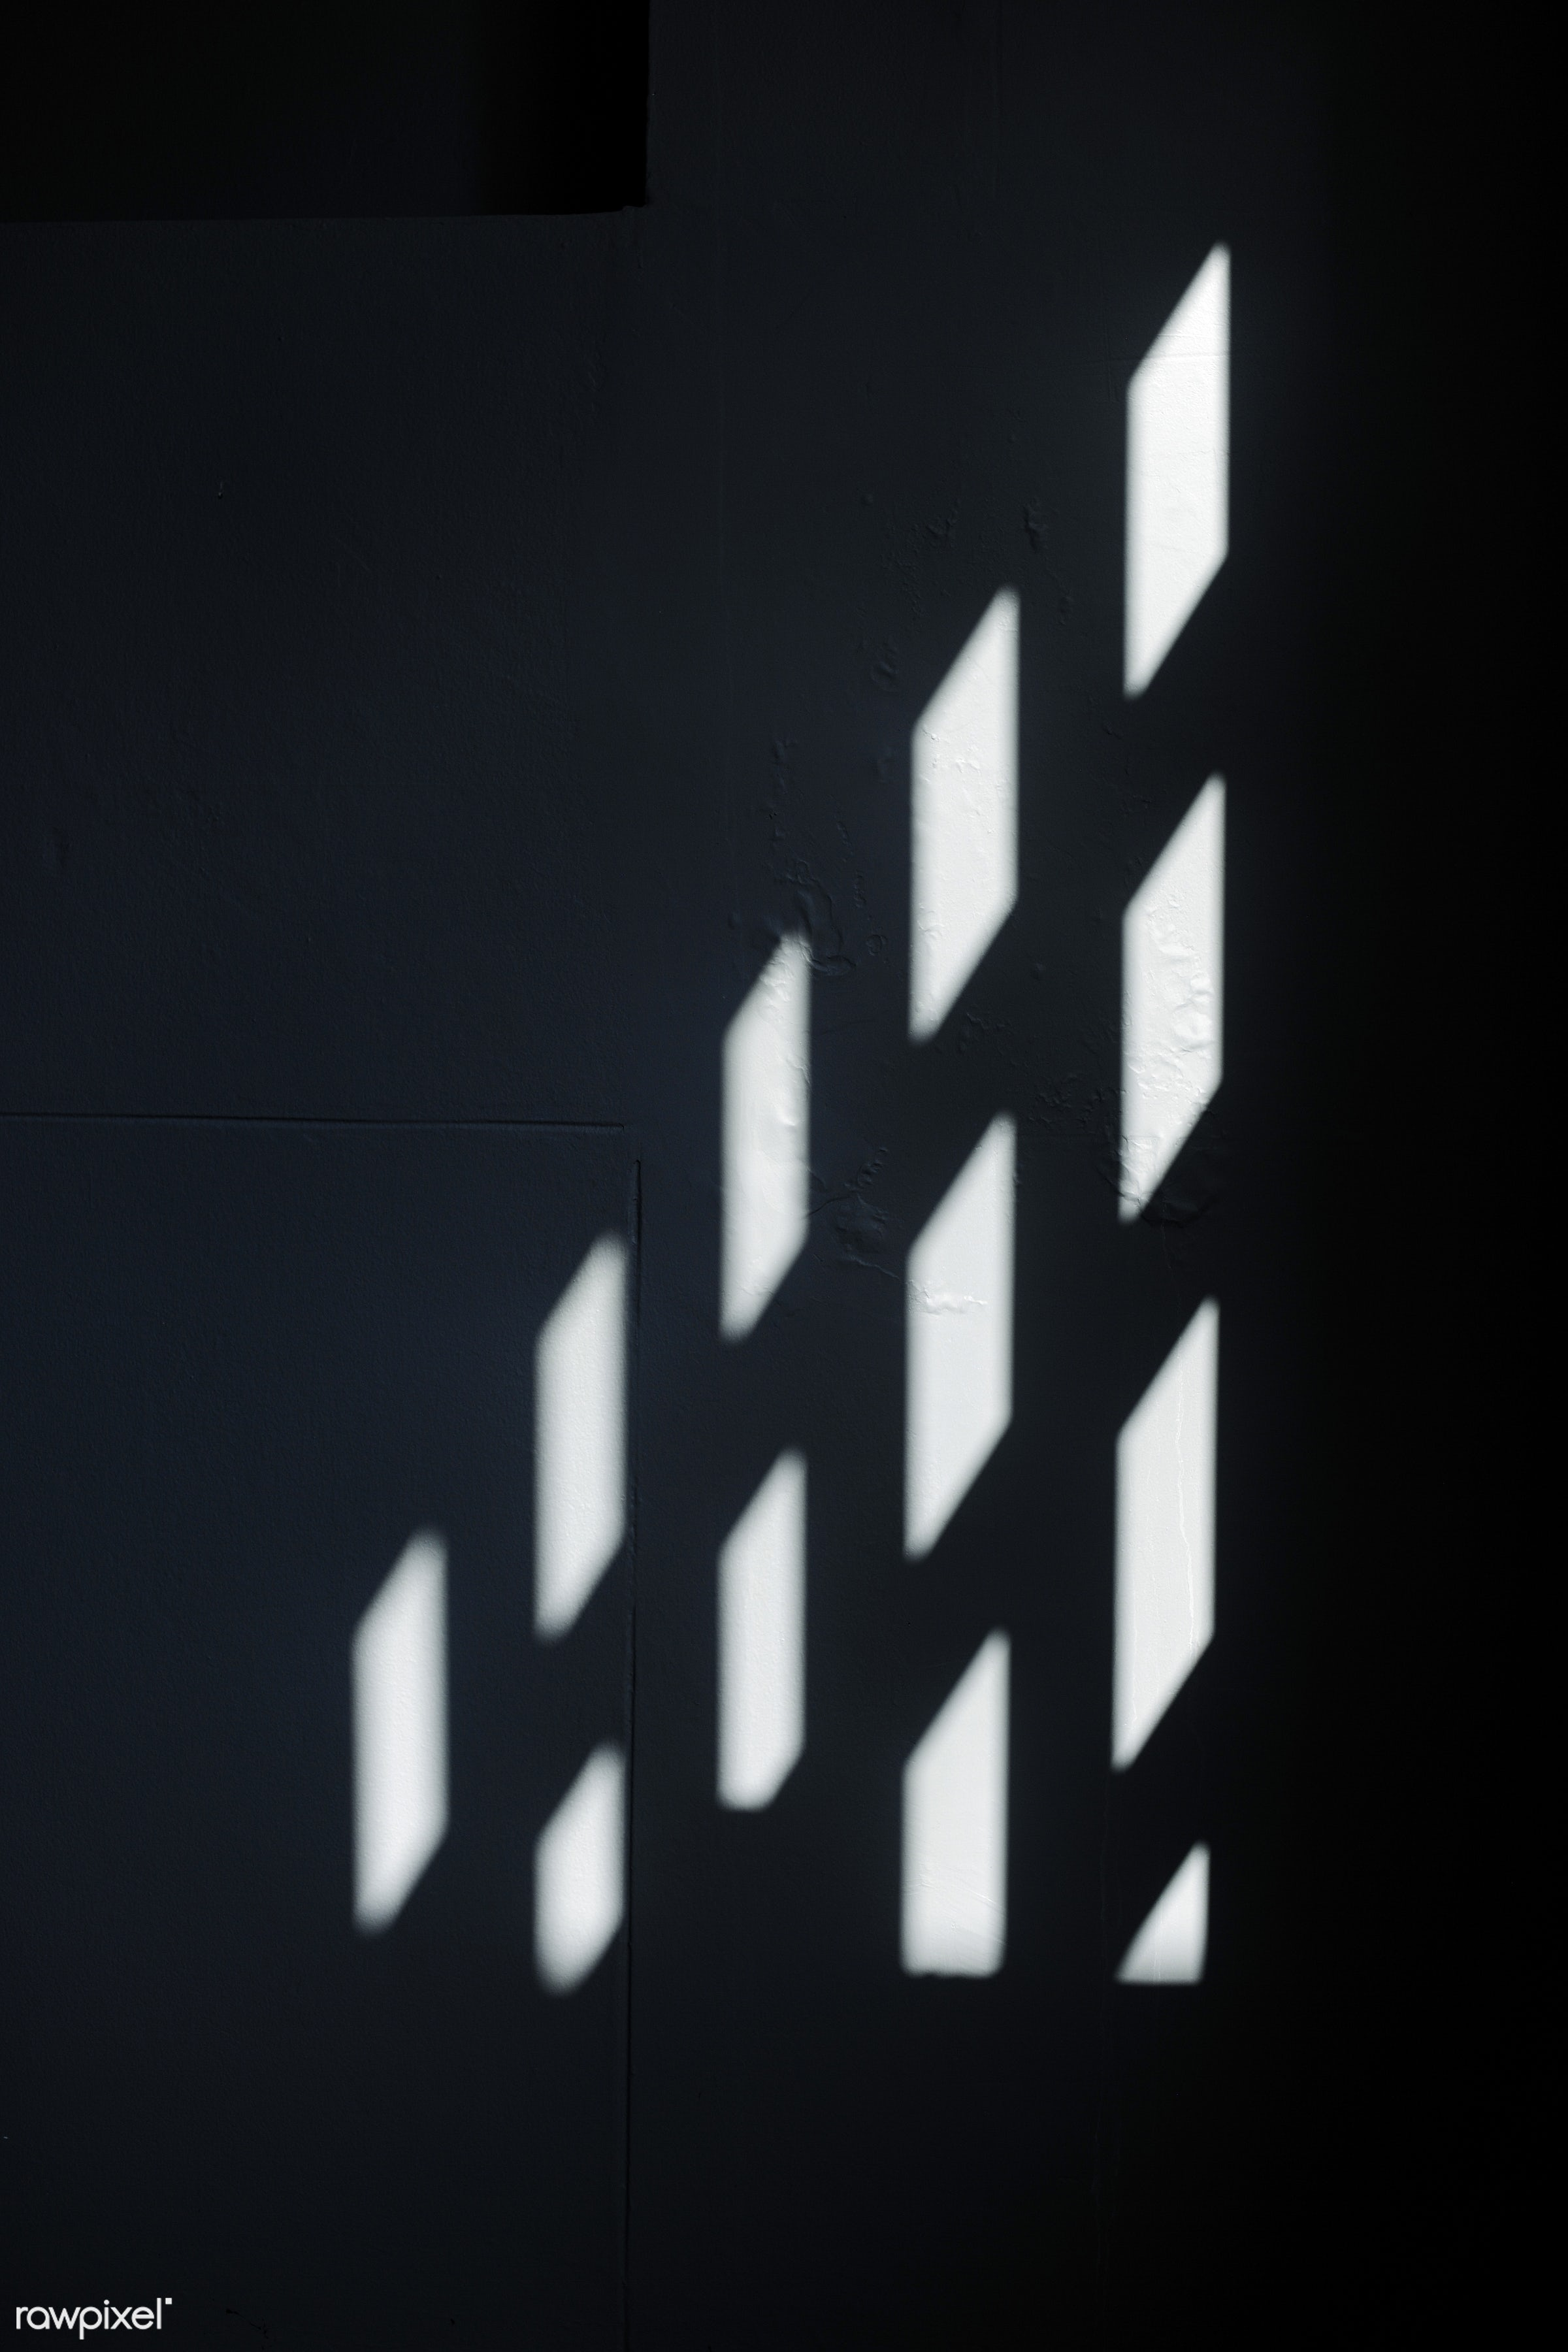 abstract, black, boxes, dark, indoors, nobody, pattern, room, shadow, squares, sunlight, surface, wall, window